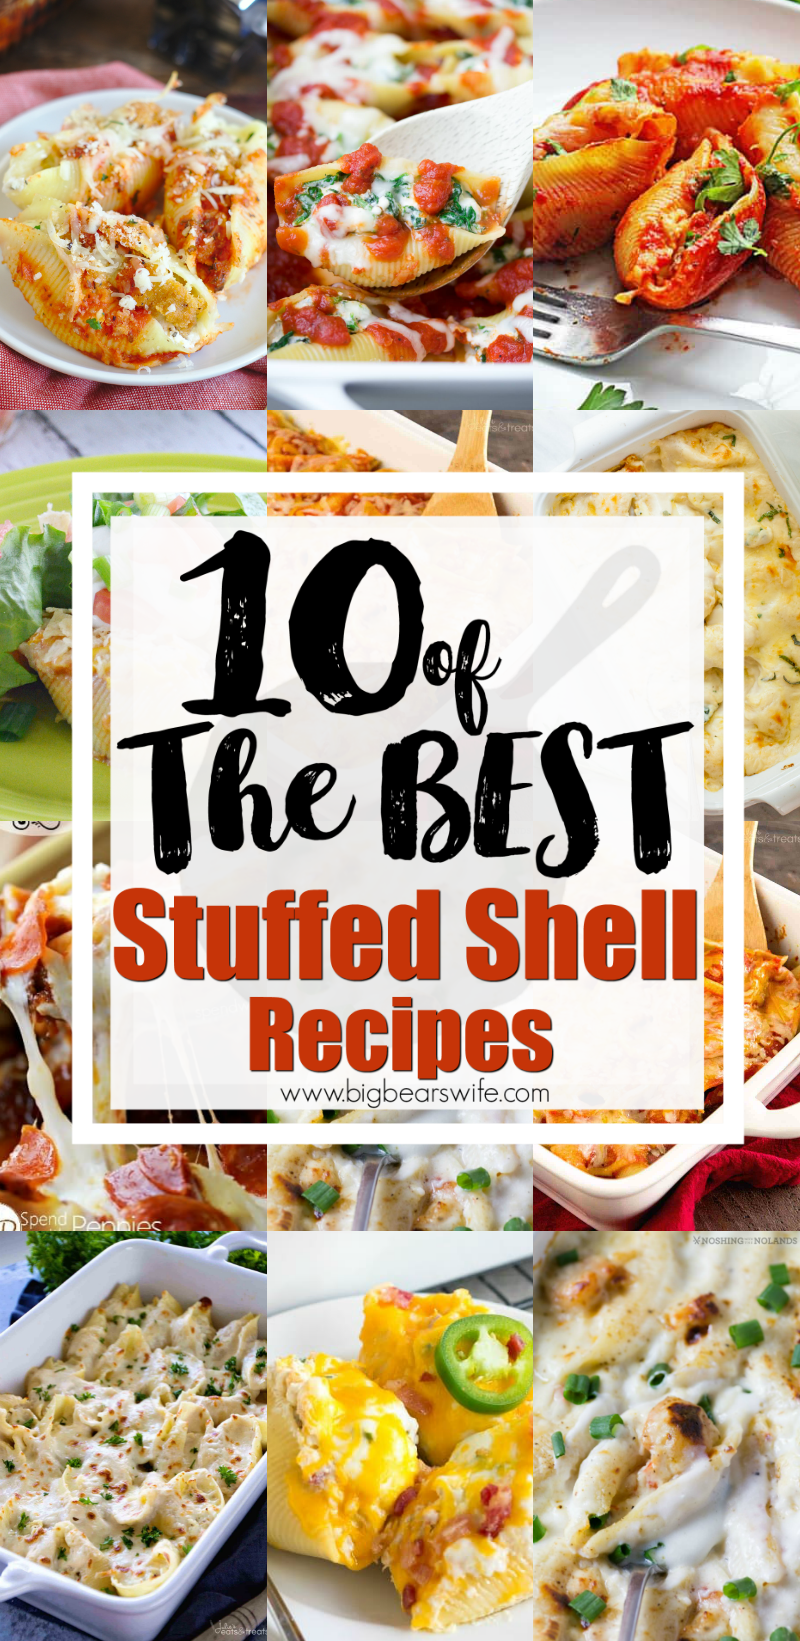 Stuffed Shells always end up making it onto our menu plan at least once a month! I love traditional stuffed shells but I'm also crazy about new ideas and here you'll find10 of the BEST Stuffed Shell Recipes out there! Give one of them a try this week! Let me know which one you love the most! #StuffedShells via @bigbearswife